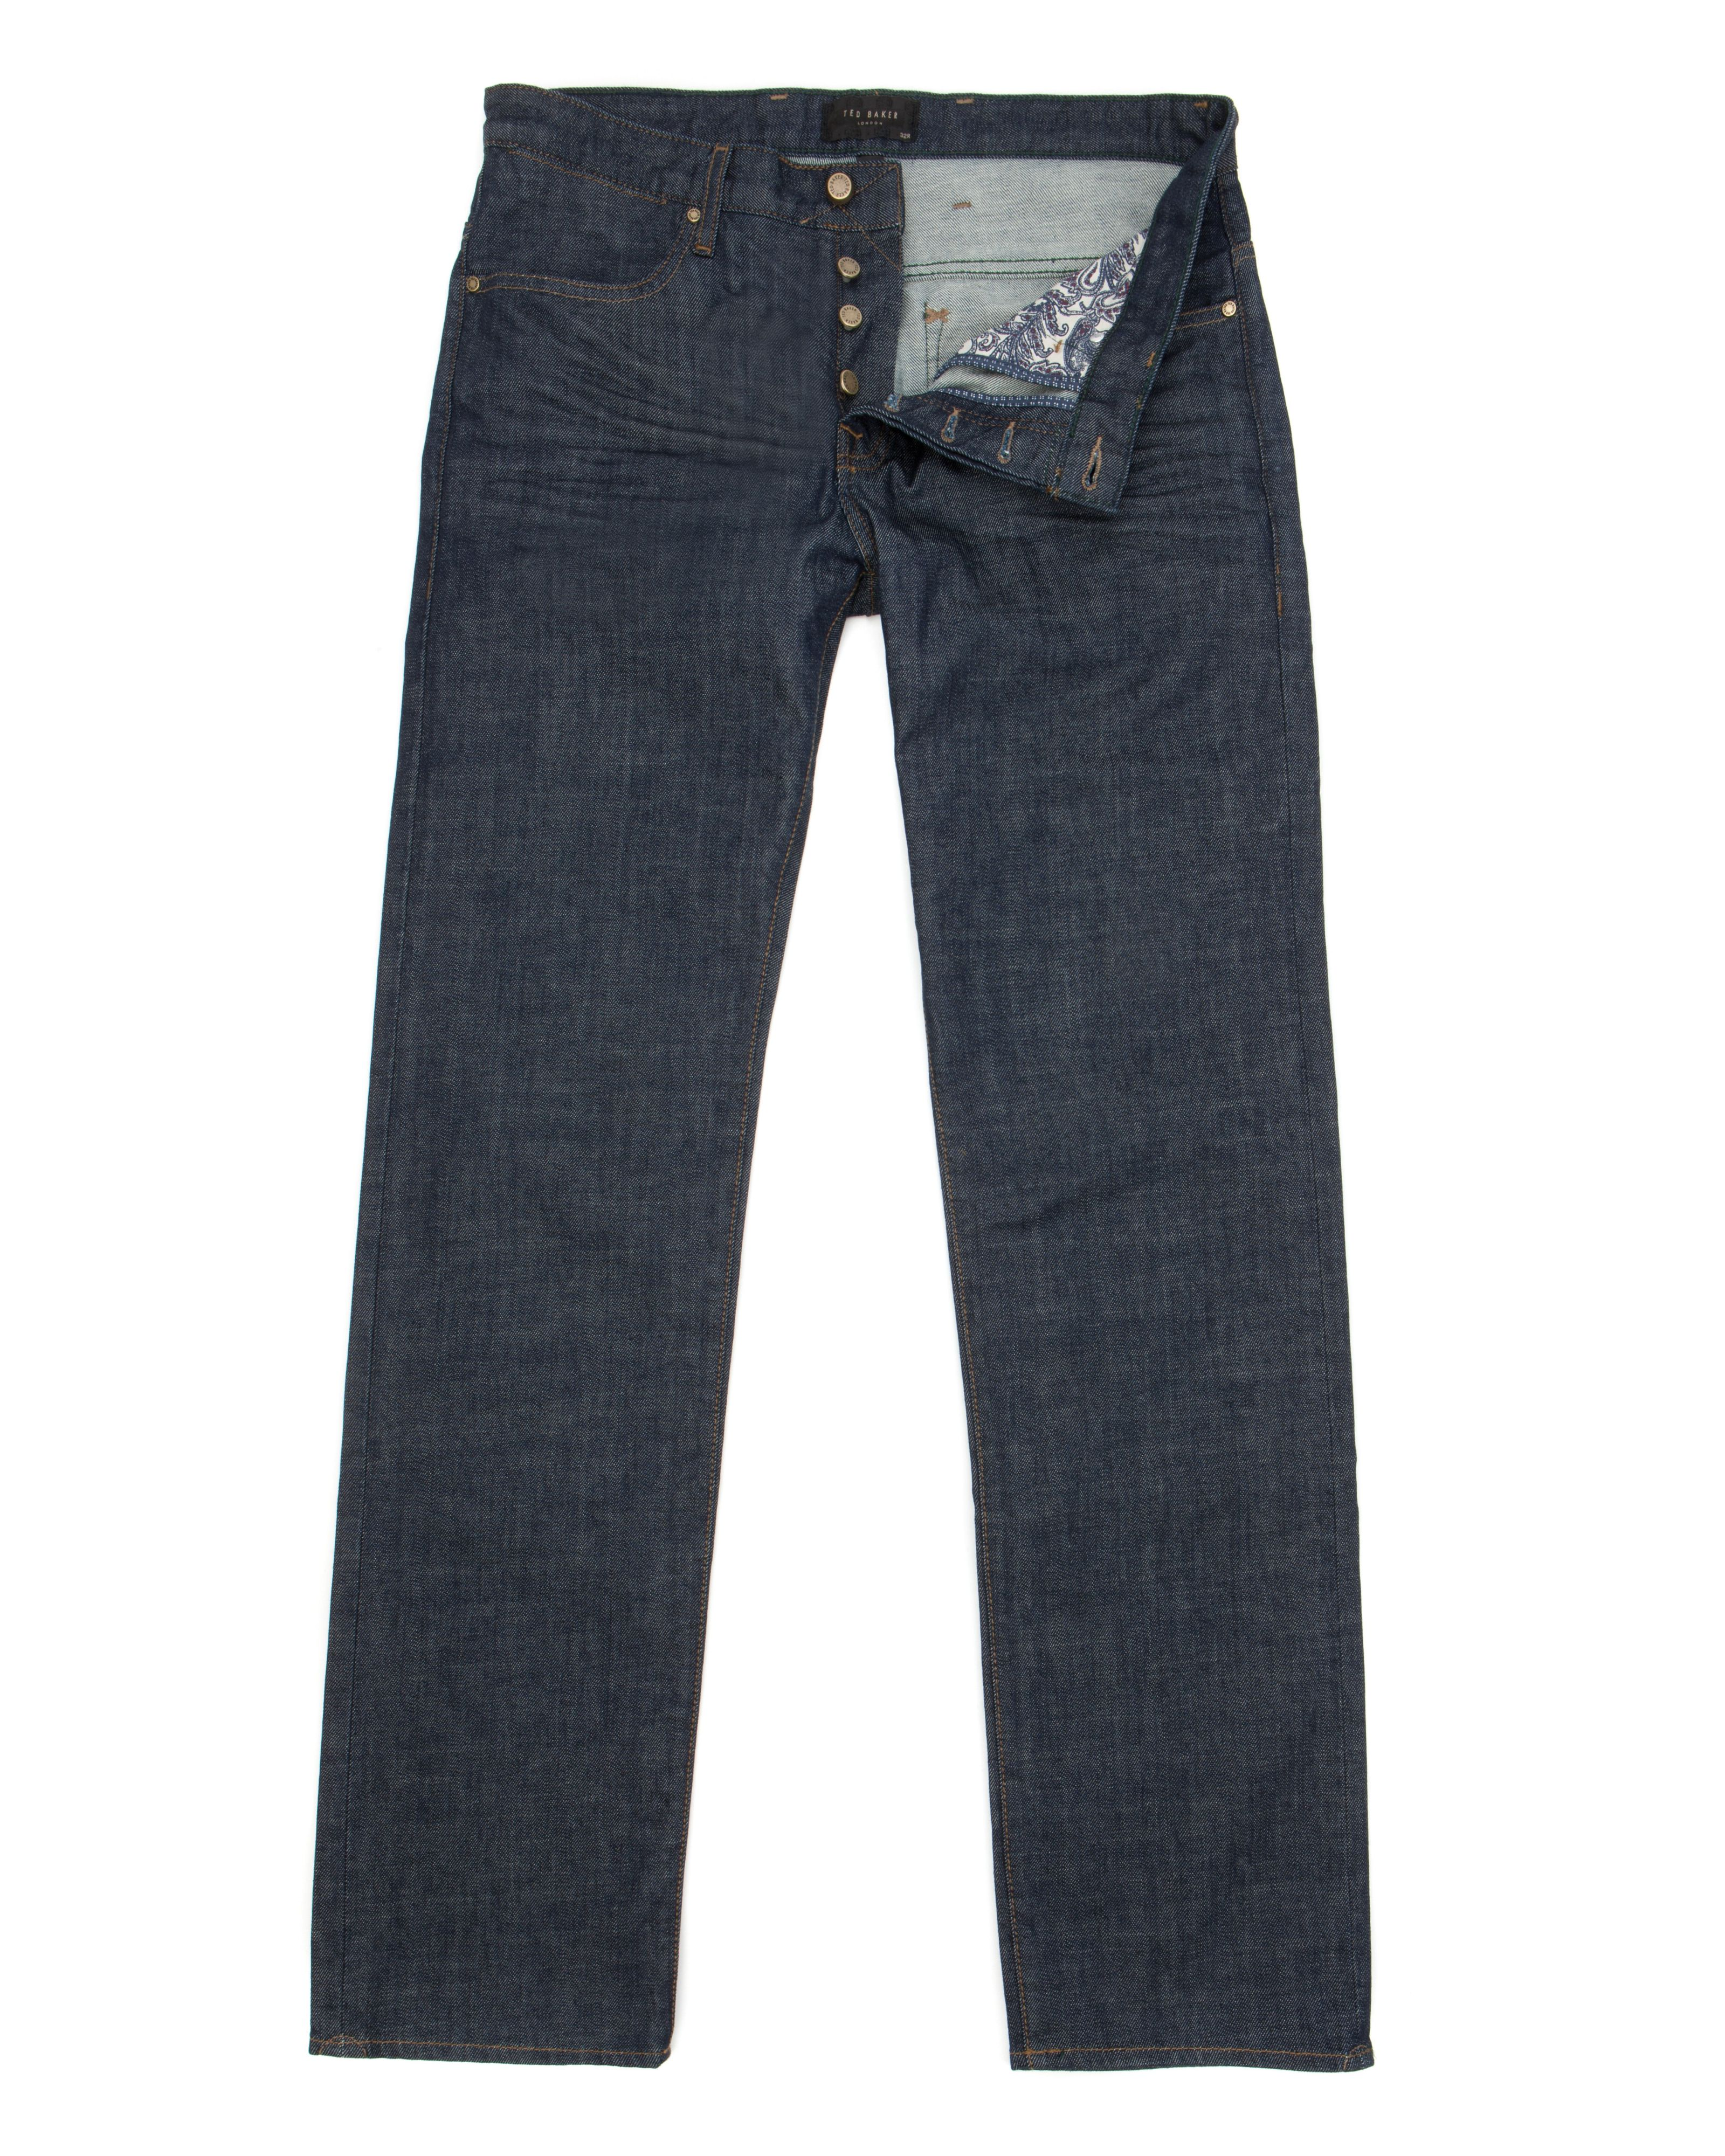 Orford smart original jean